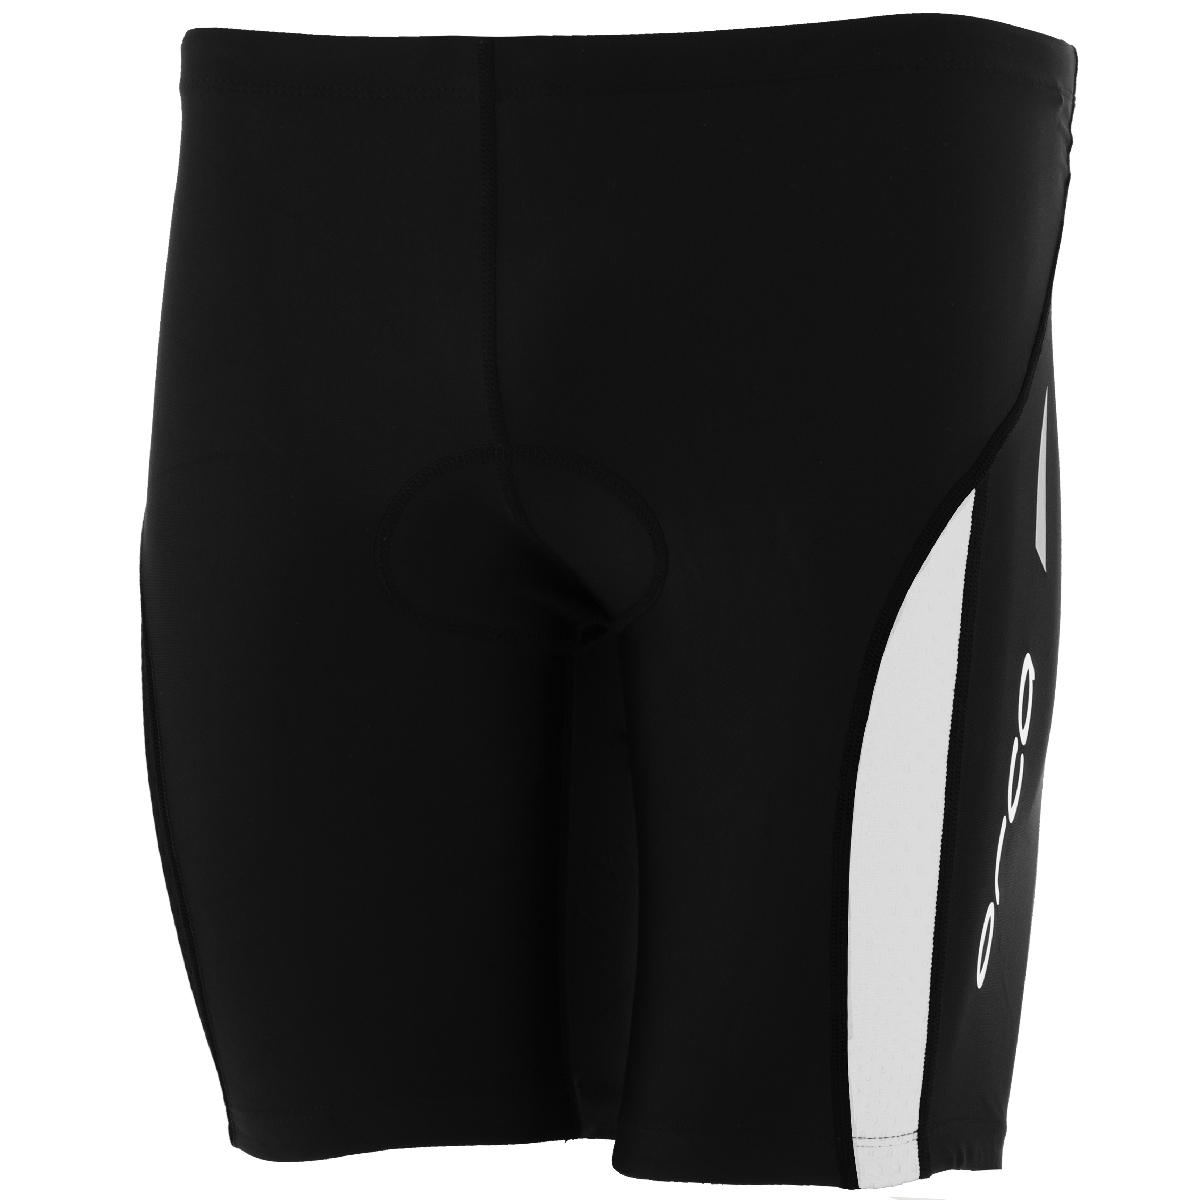 Orca Core Triathlon Short Men's Size S Black White U.S.A. & Canada